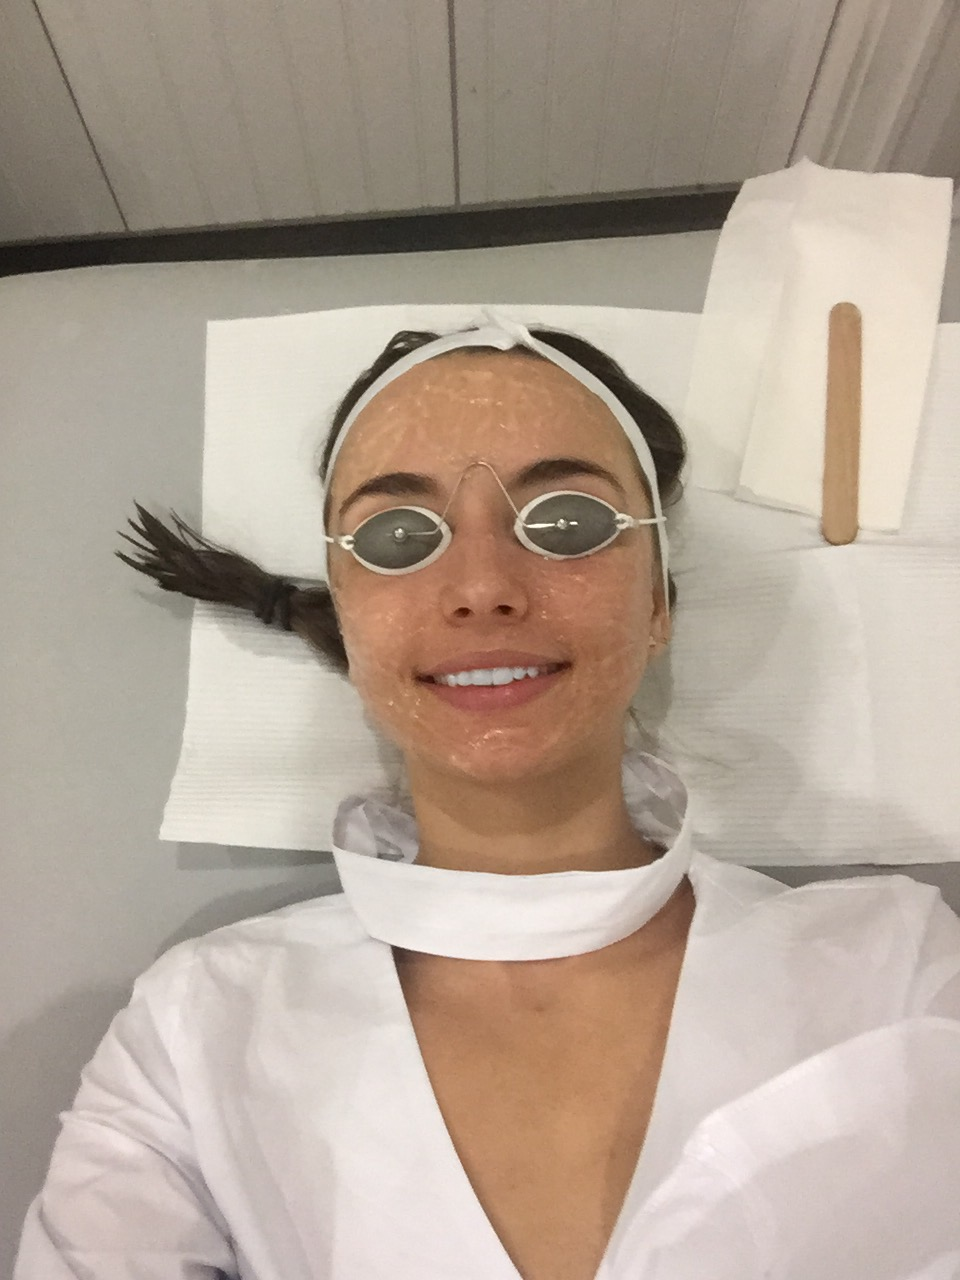 Meet the $45 Laser Skin Treatment That Totally Transformed My Skin